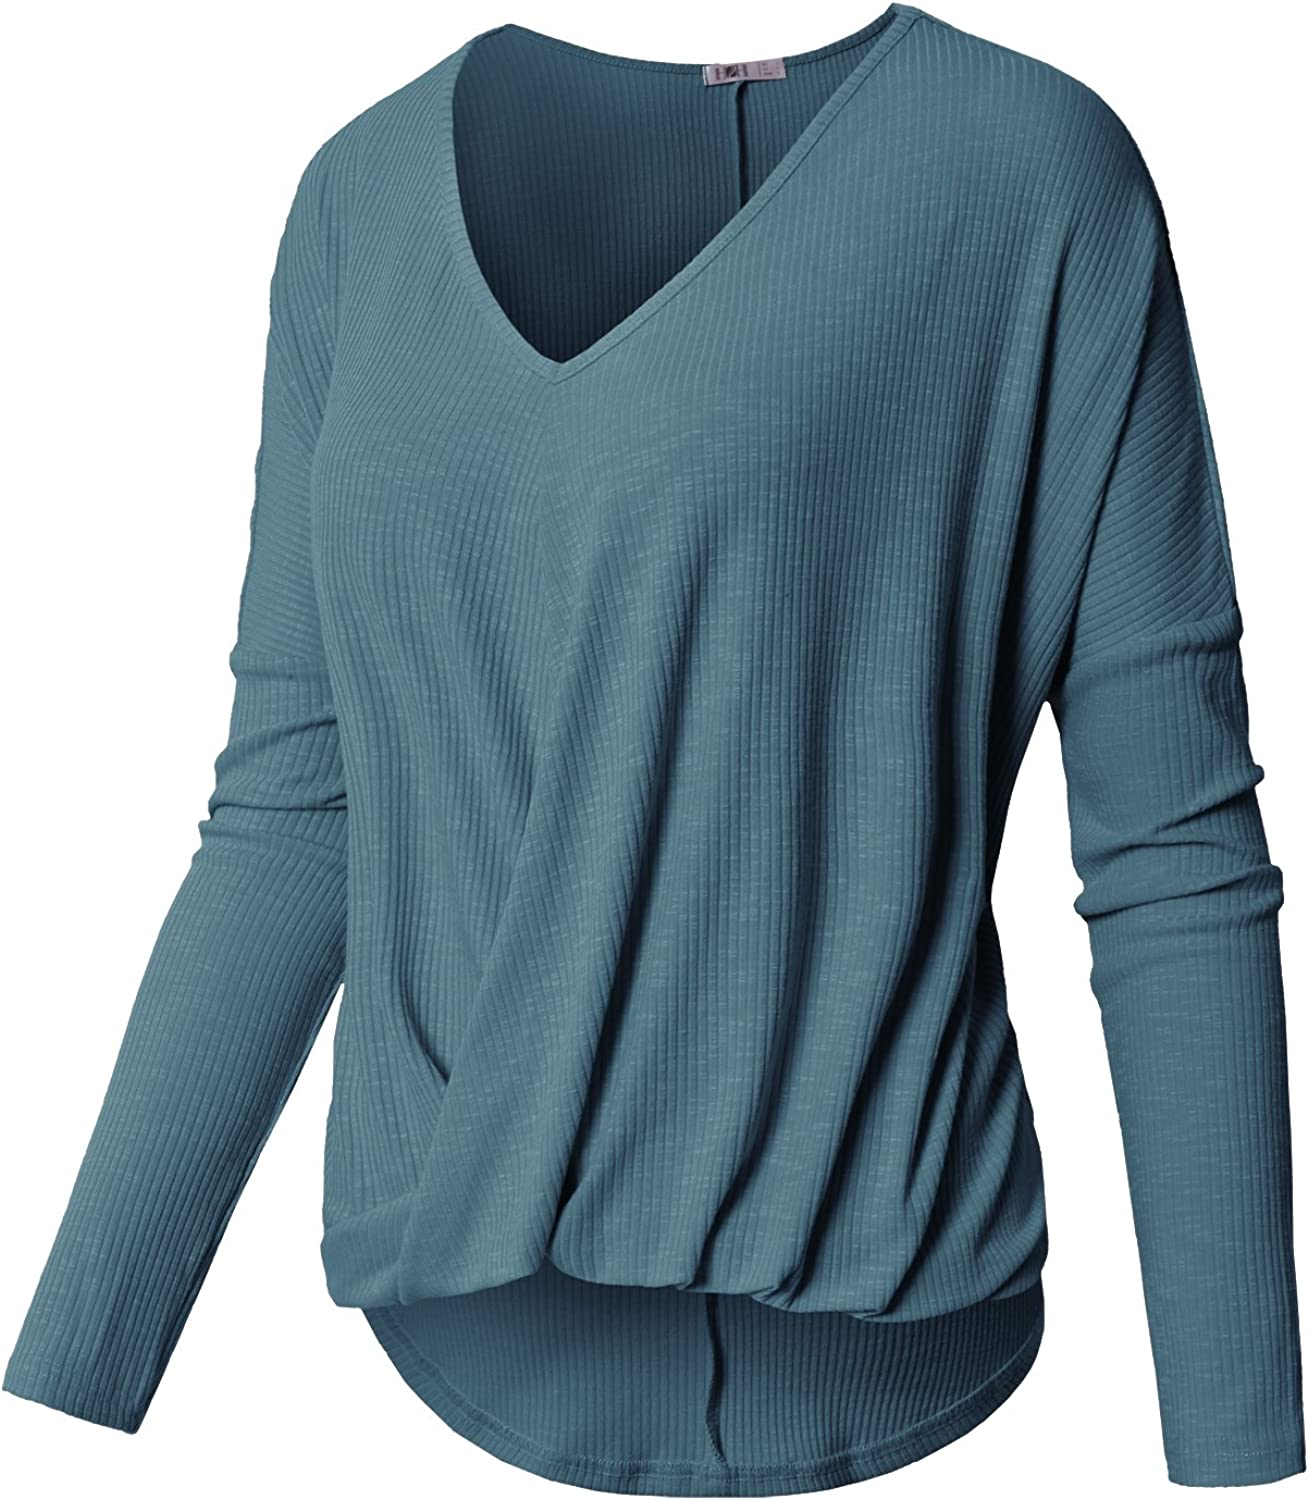 H2H Womens Casual TShirts Loose Fit Knit Sweater Top of Various Styles